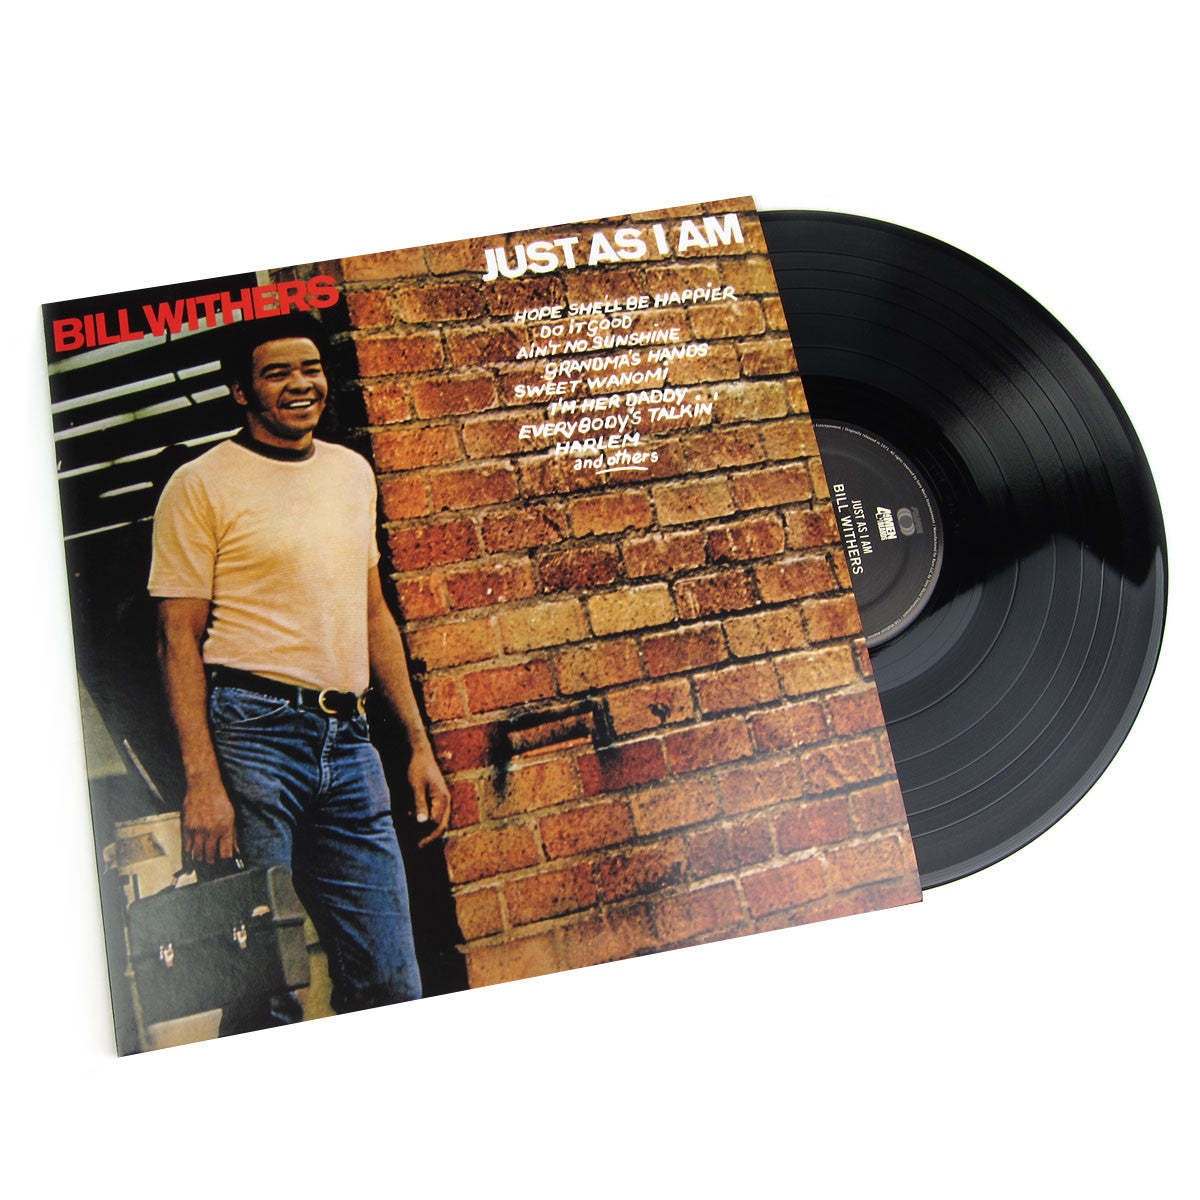 Bill Withers: Just As I Am (180g) Vinyl LP